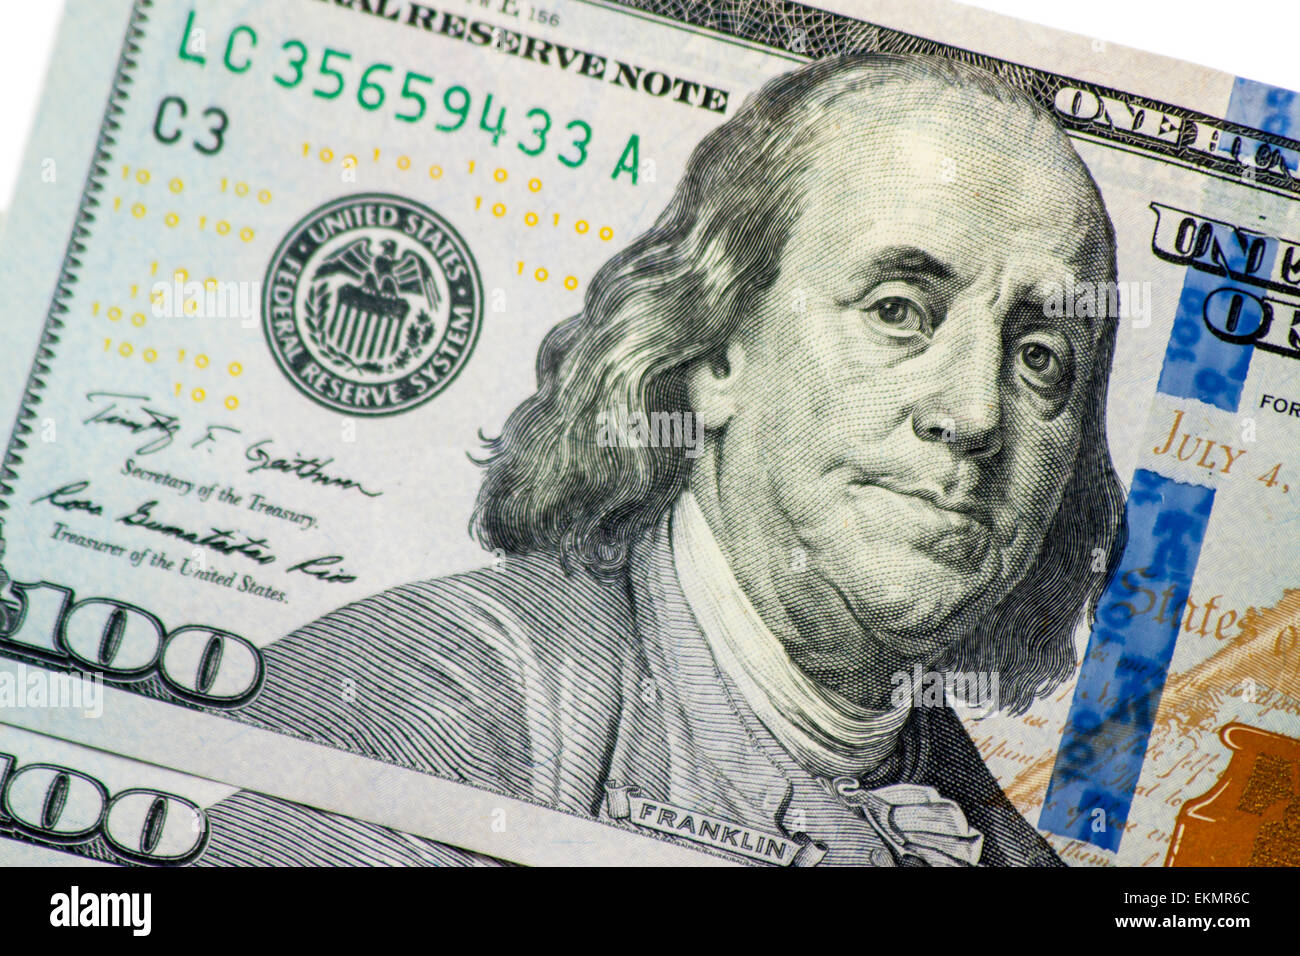 United States One Hundred dollar bills fanned out - Stock Image